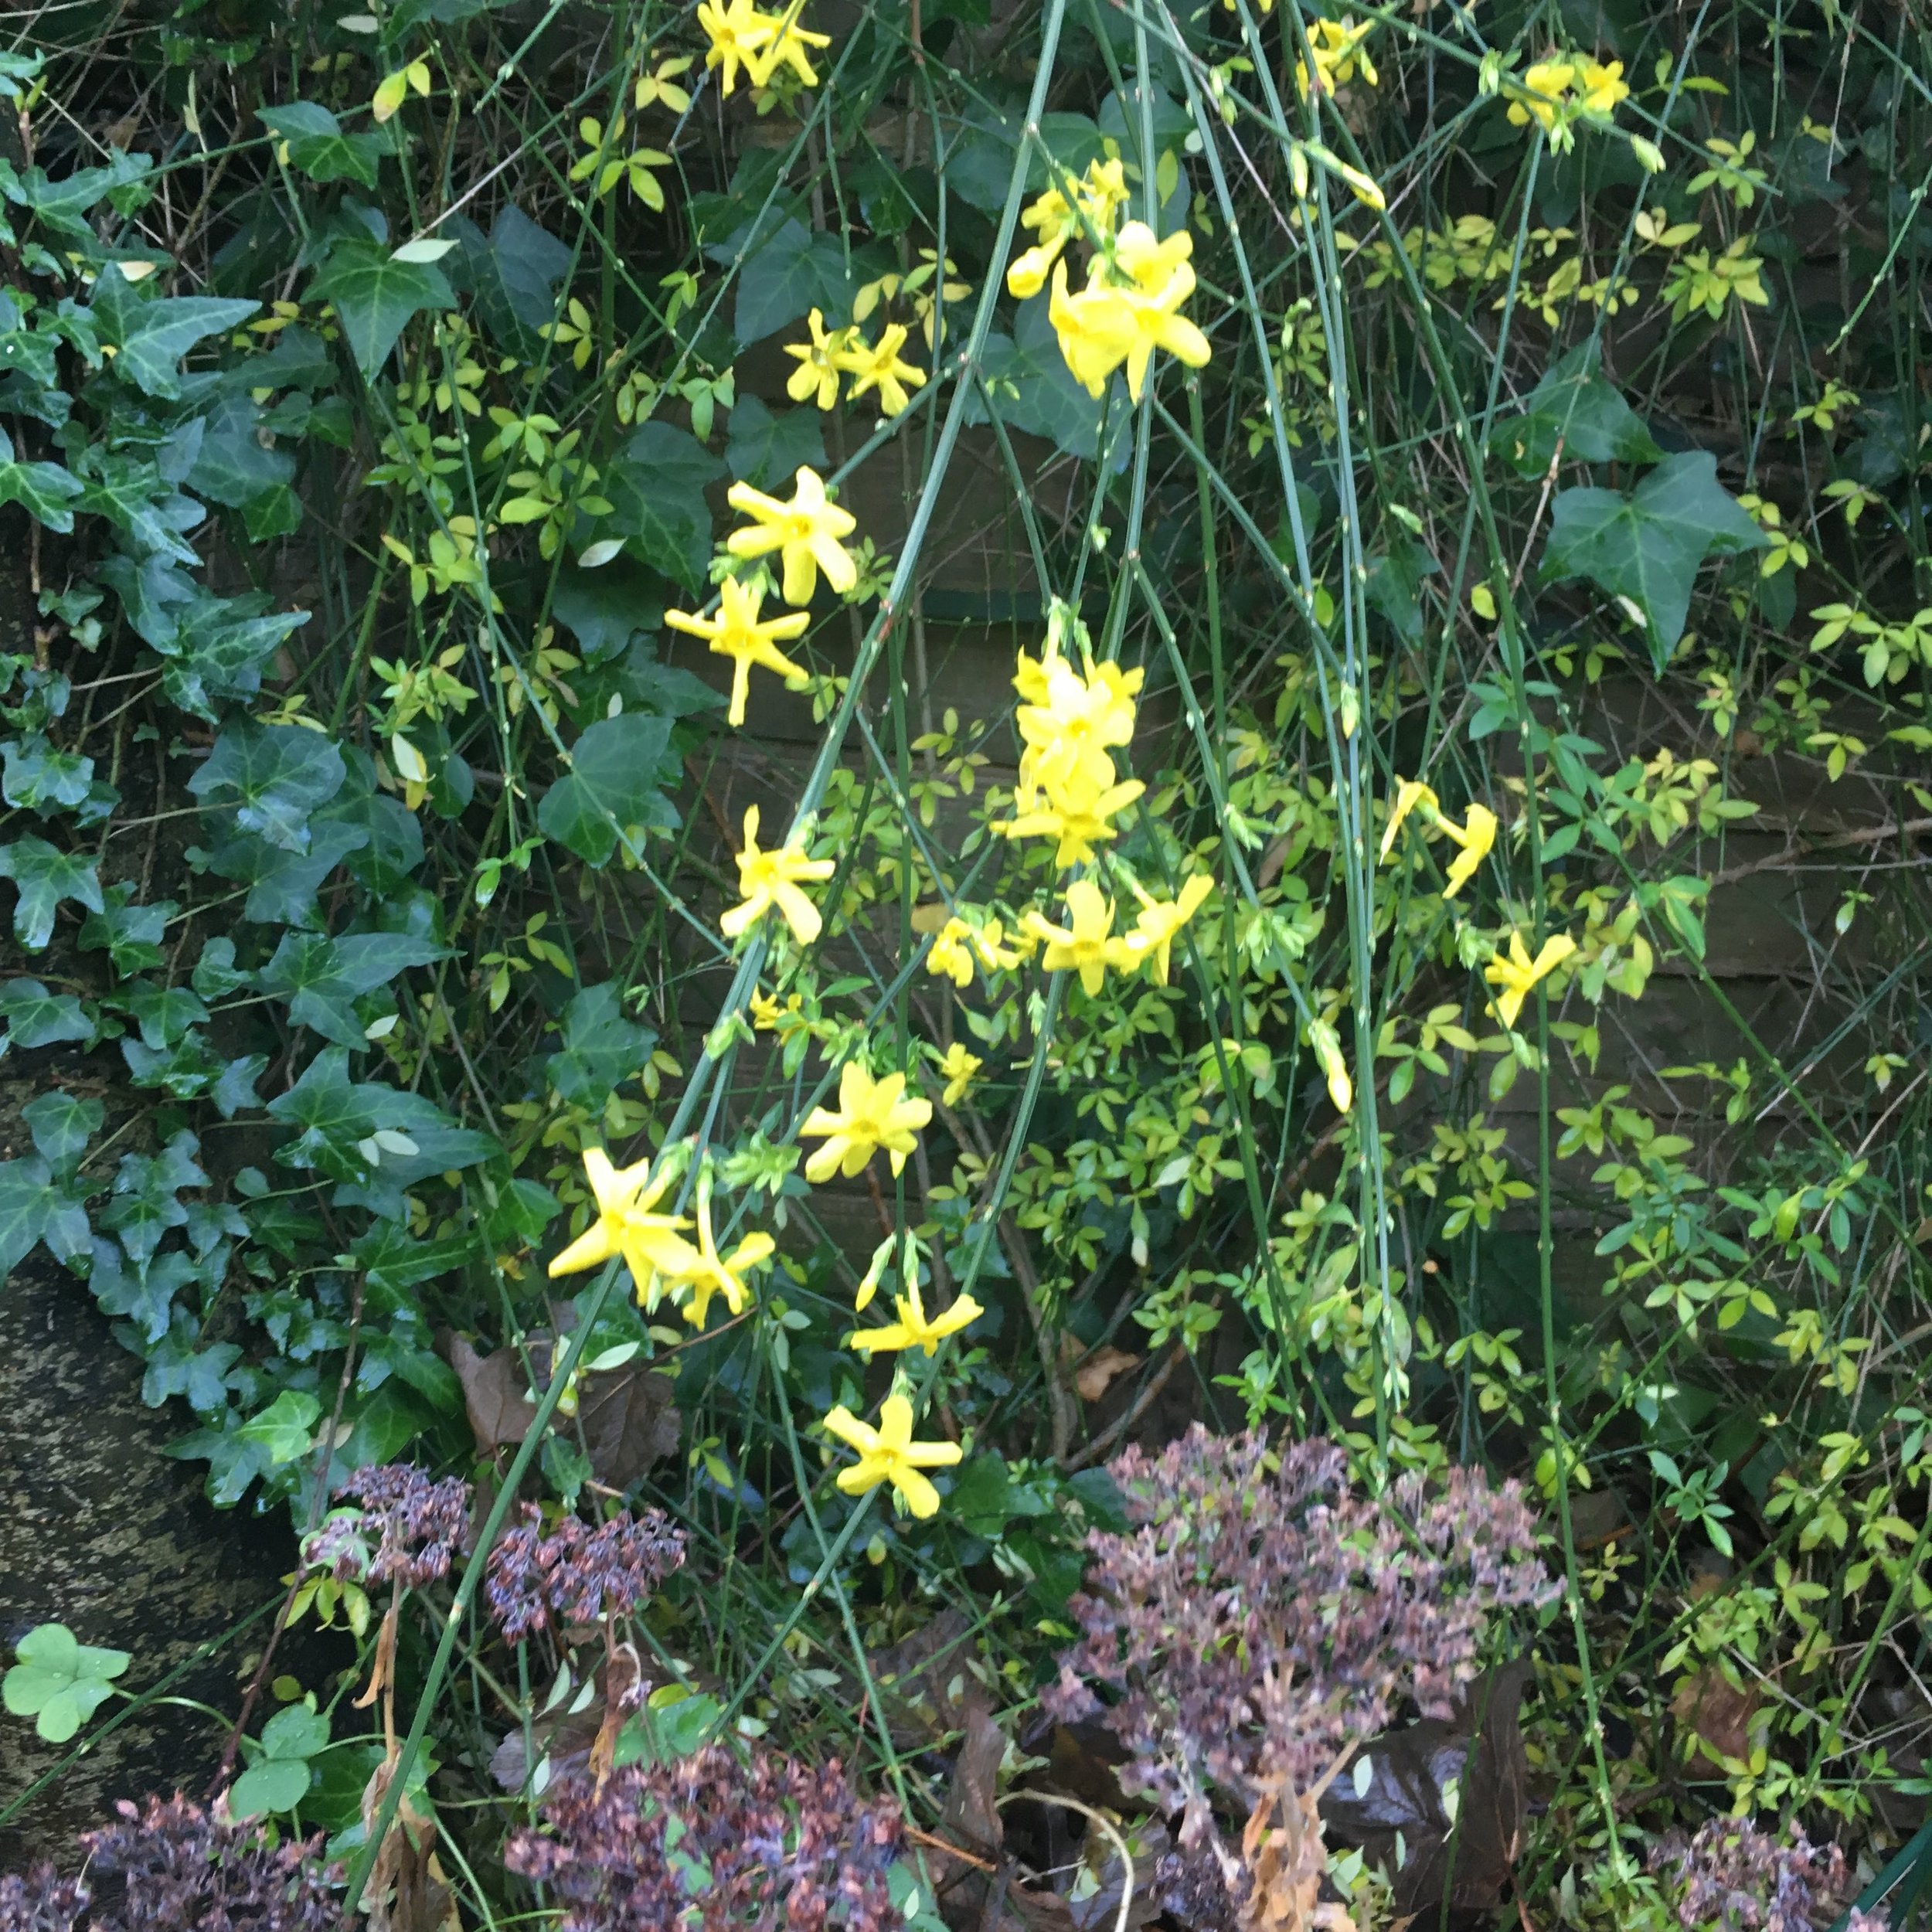 WINTER JASMINE ADDING ITS OWN COLOUR